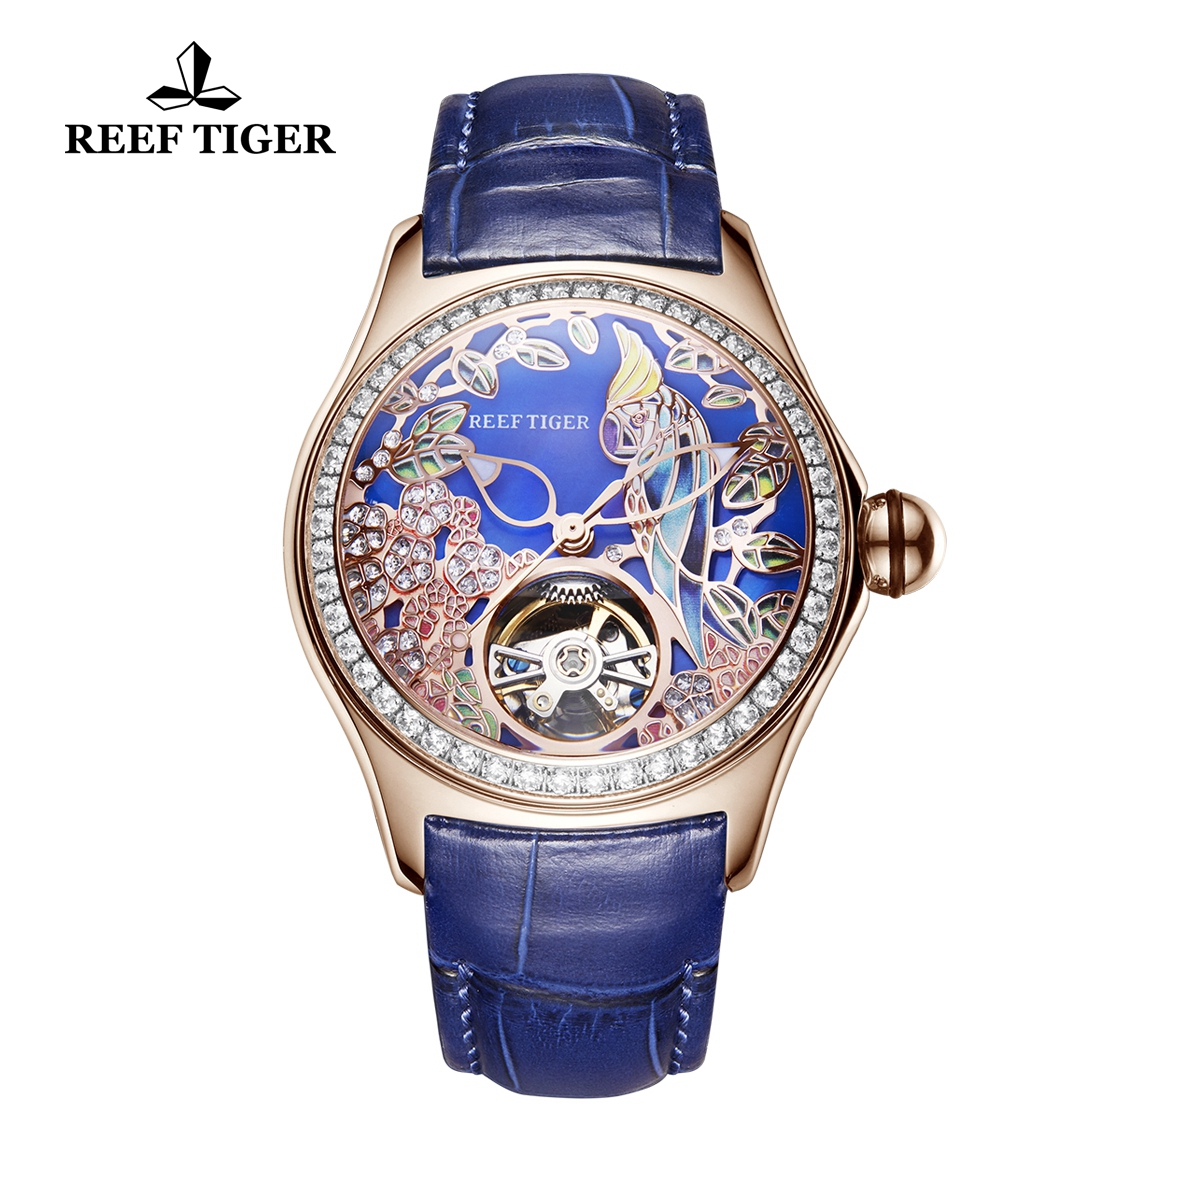 Reef Tiger Aurora Parrot Casual Diamonds Bezel Watch Rose Gold Case Leather Strap RGA7105-PLLD